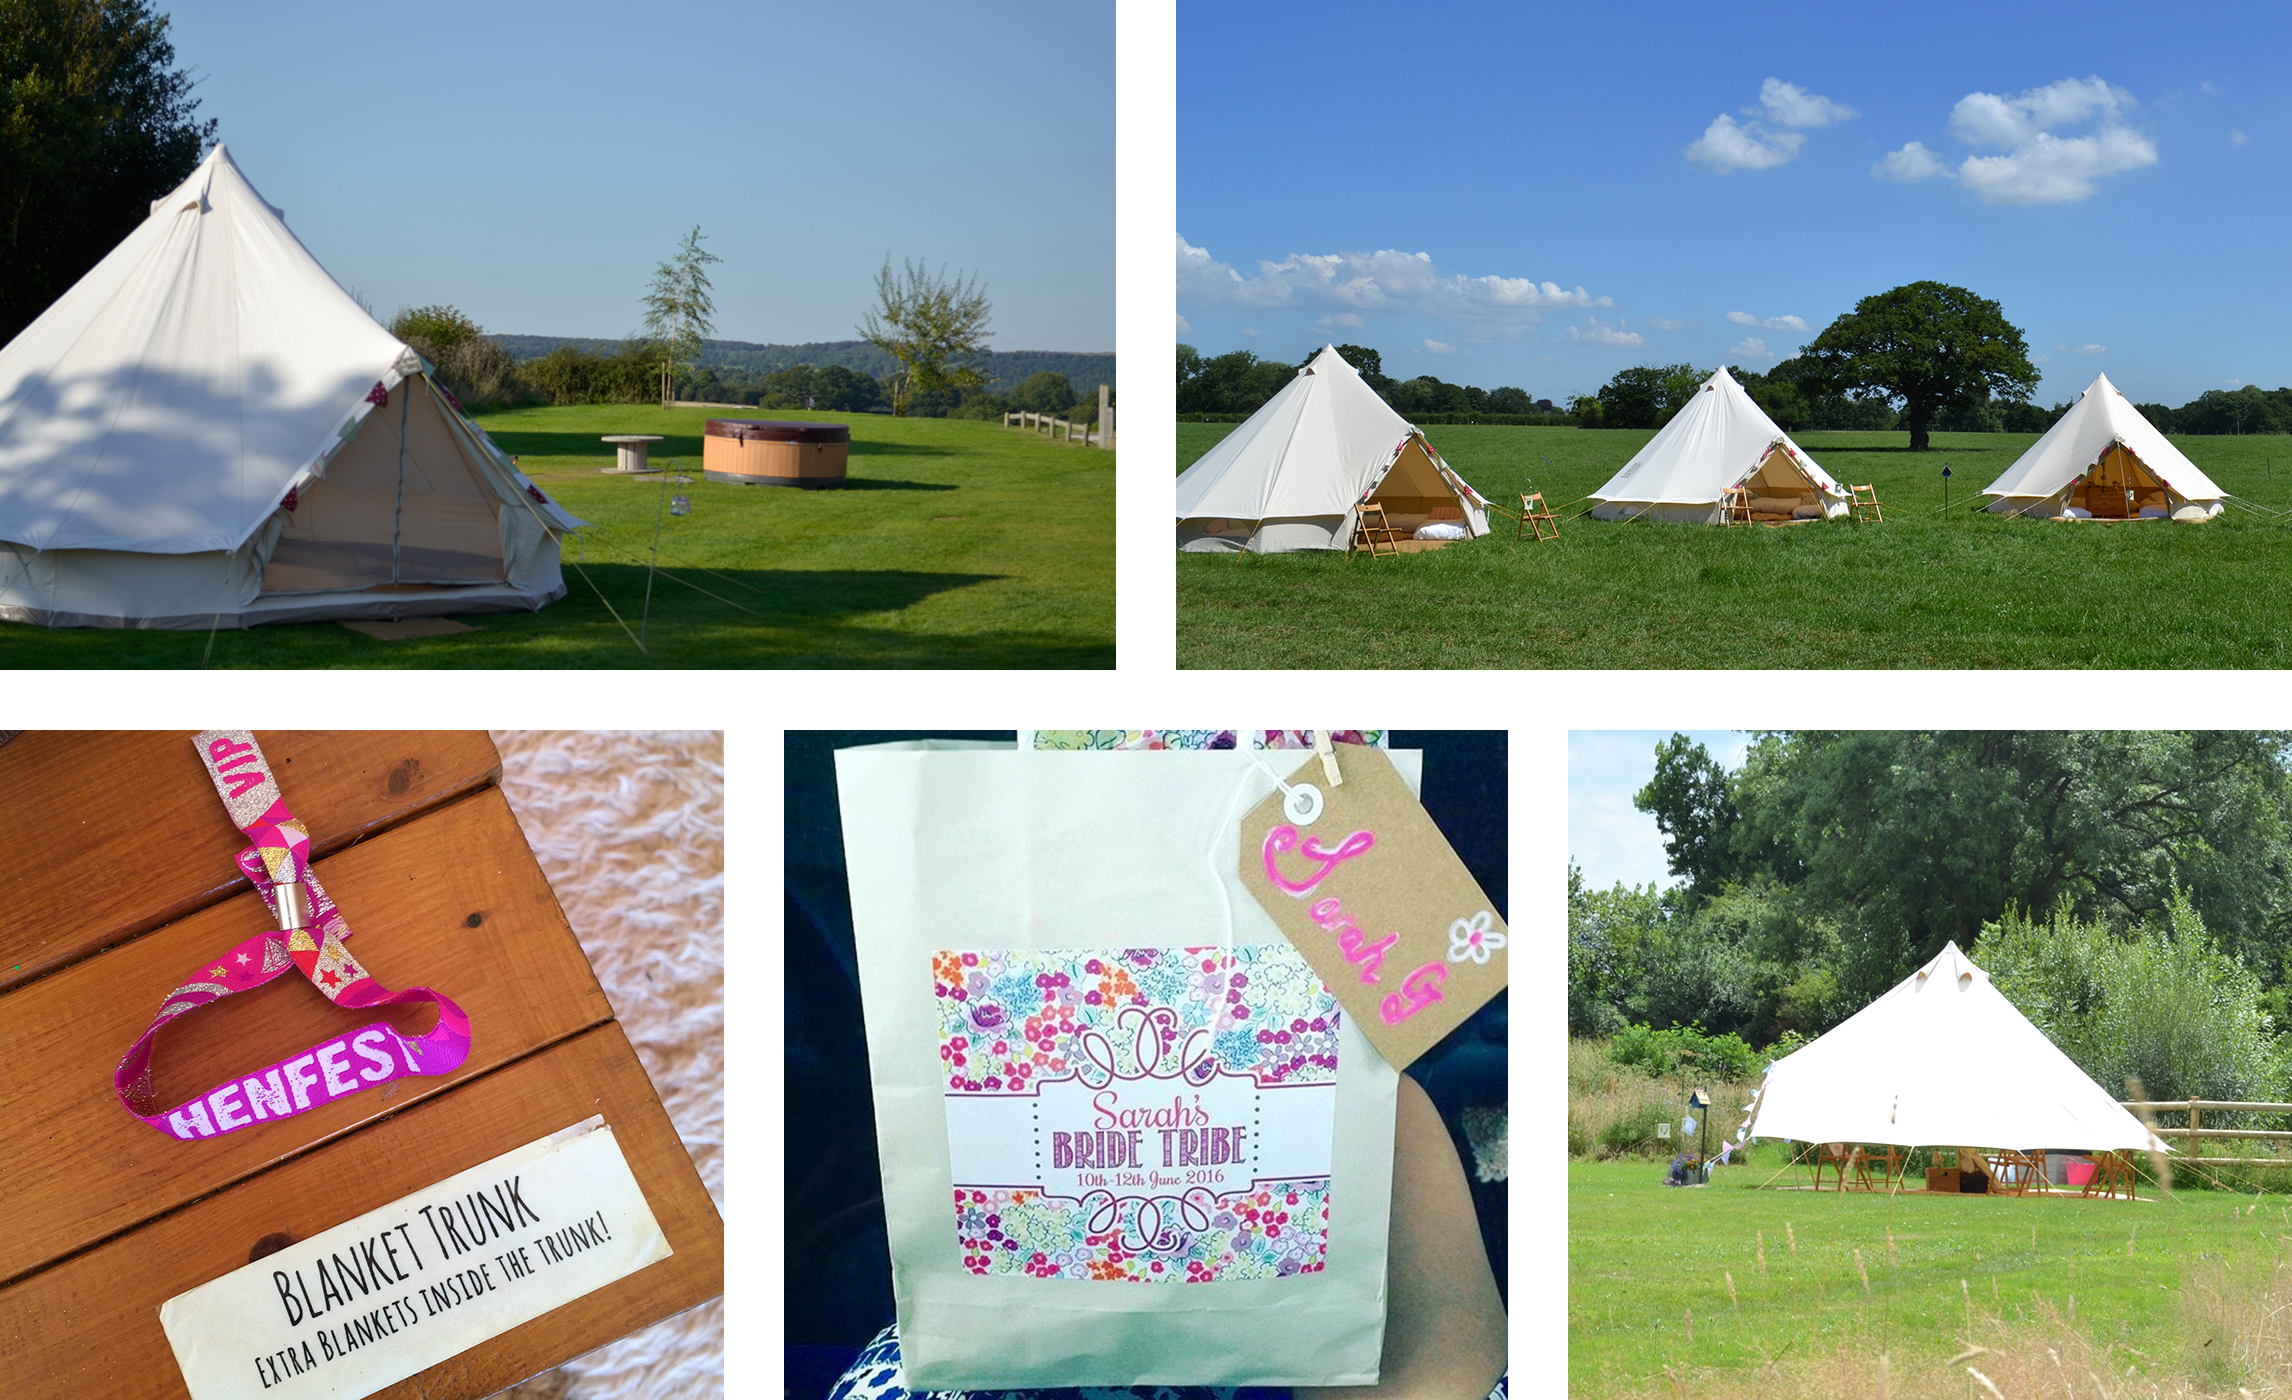 Pop-Up Hen Camp with Tinkers Bells, perfect memorable experience with family and friends